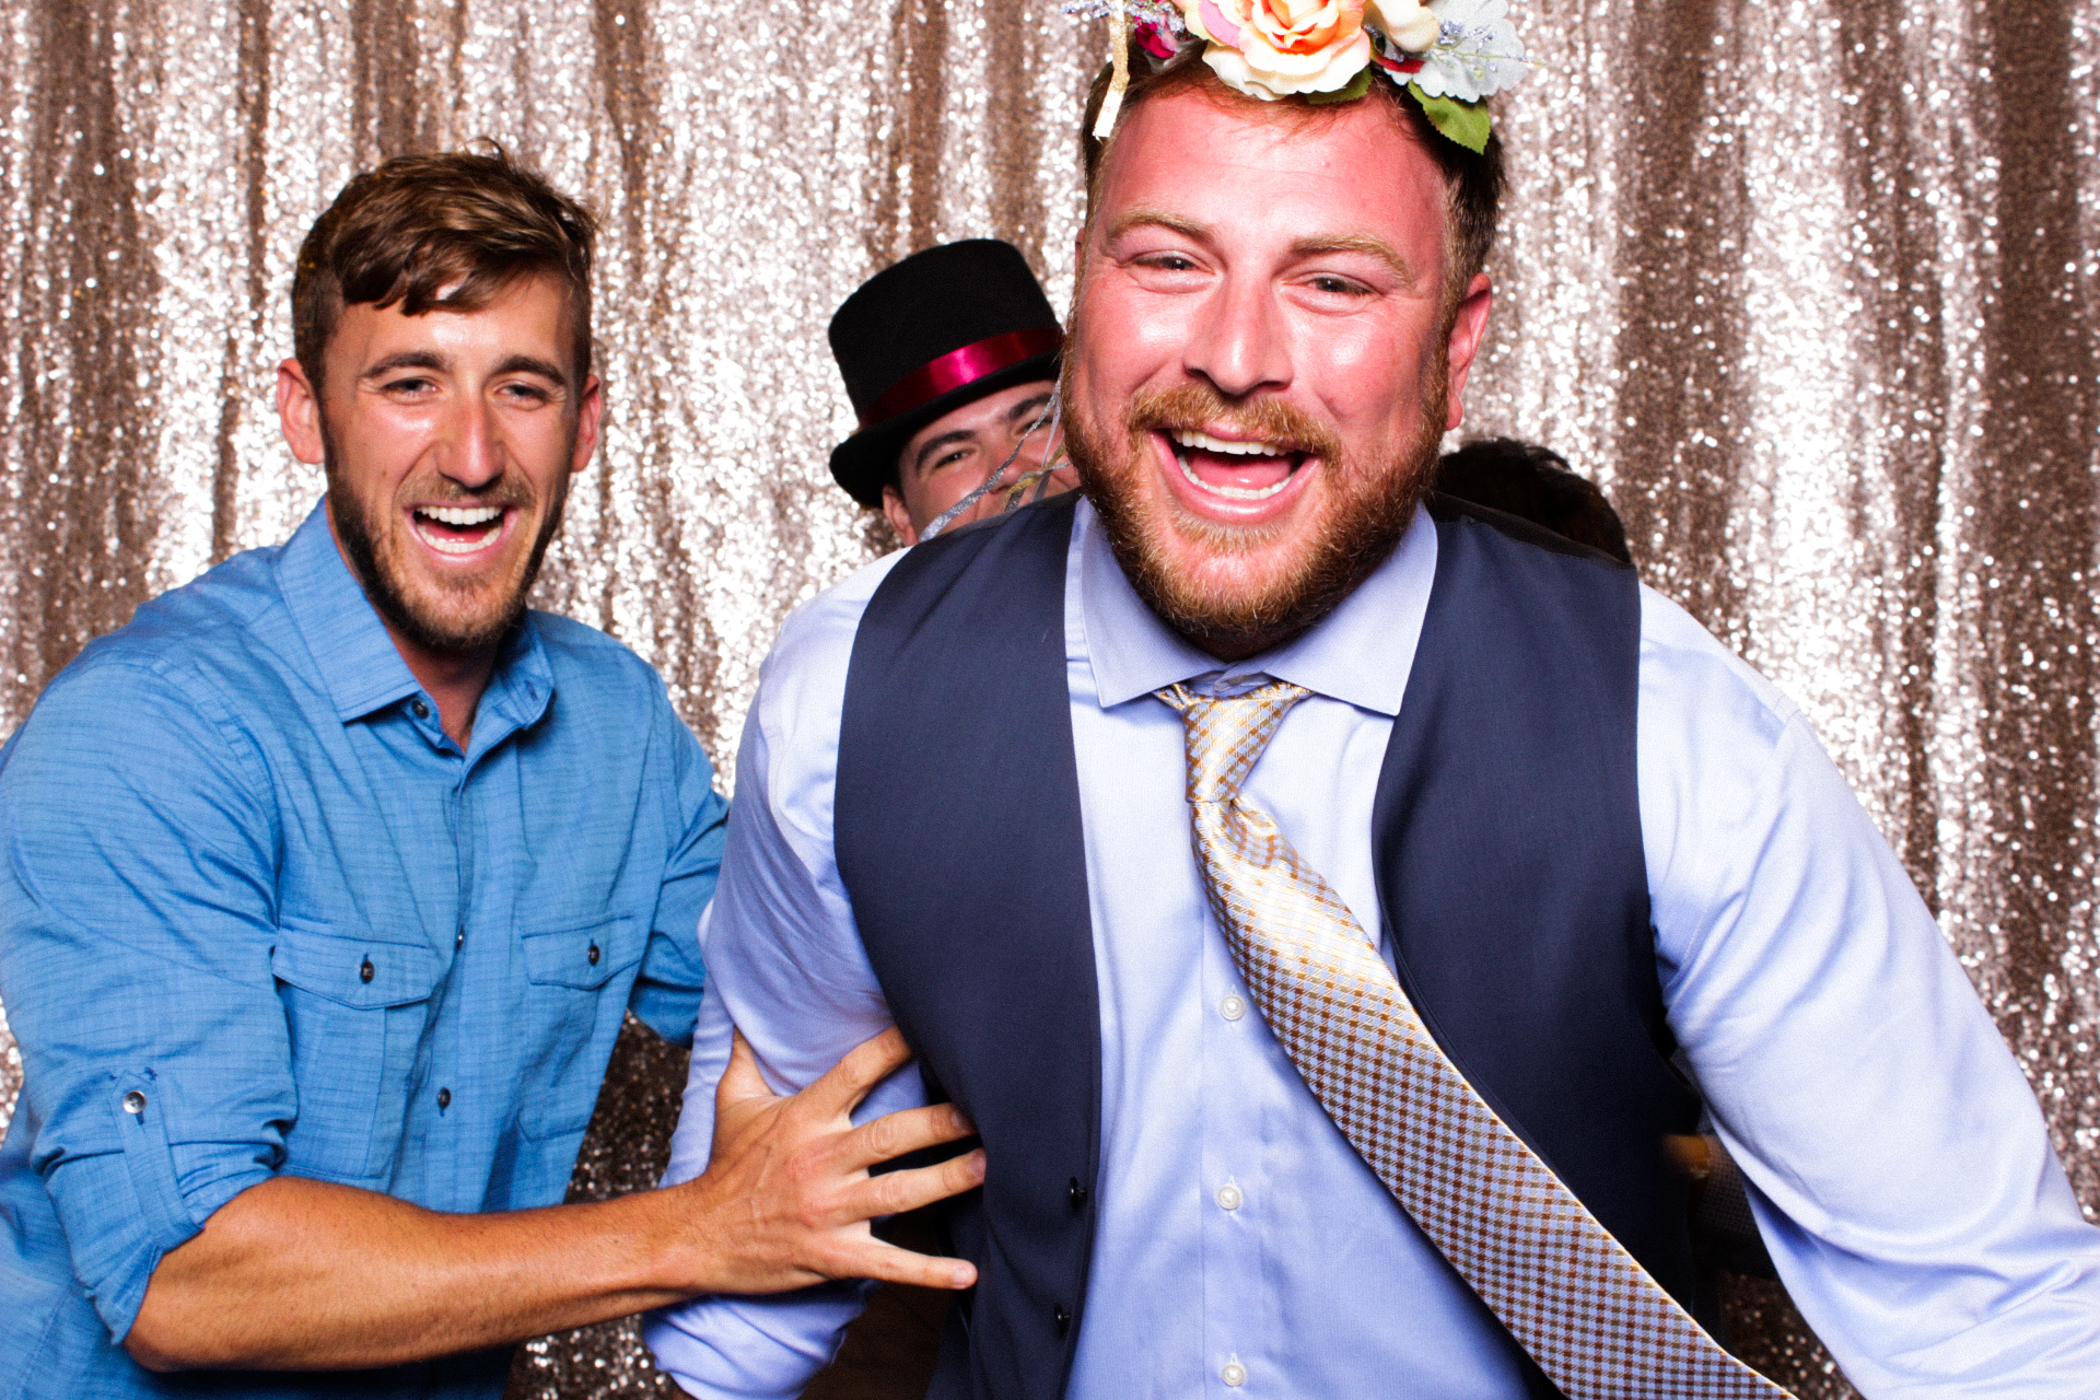 The_Reverie_Booth-Boca_Raton_Photobooth-Wedding_Photobooth_Florida-Florida_Photobooth_Rental-Wedding_Photobooth-052.jpg